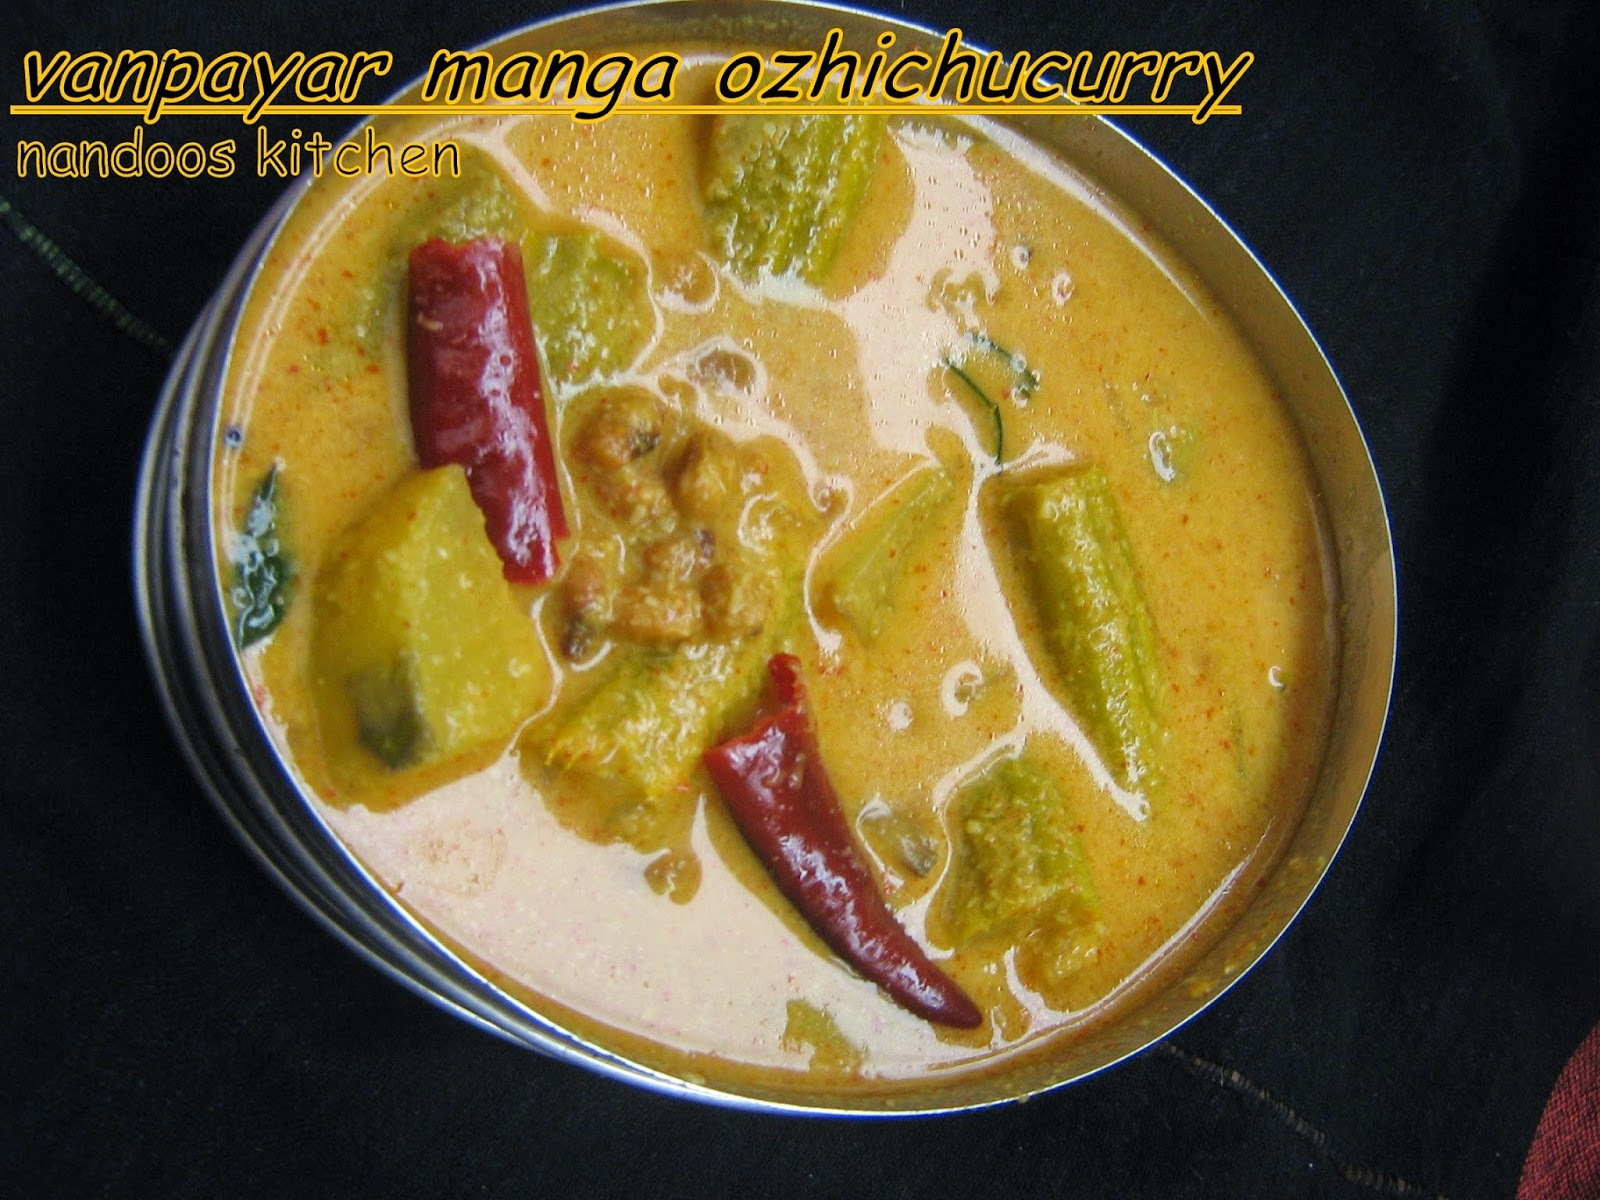 vanpayar manga ozhichu curry / vellapayar manga curry / black eyed beans mango curry